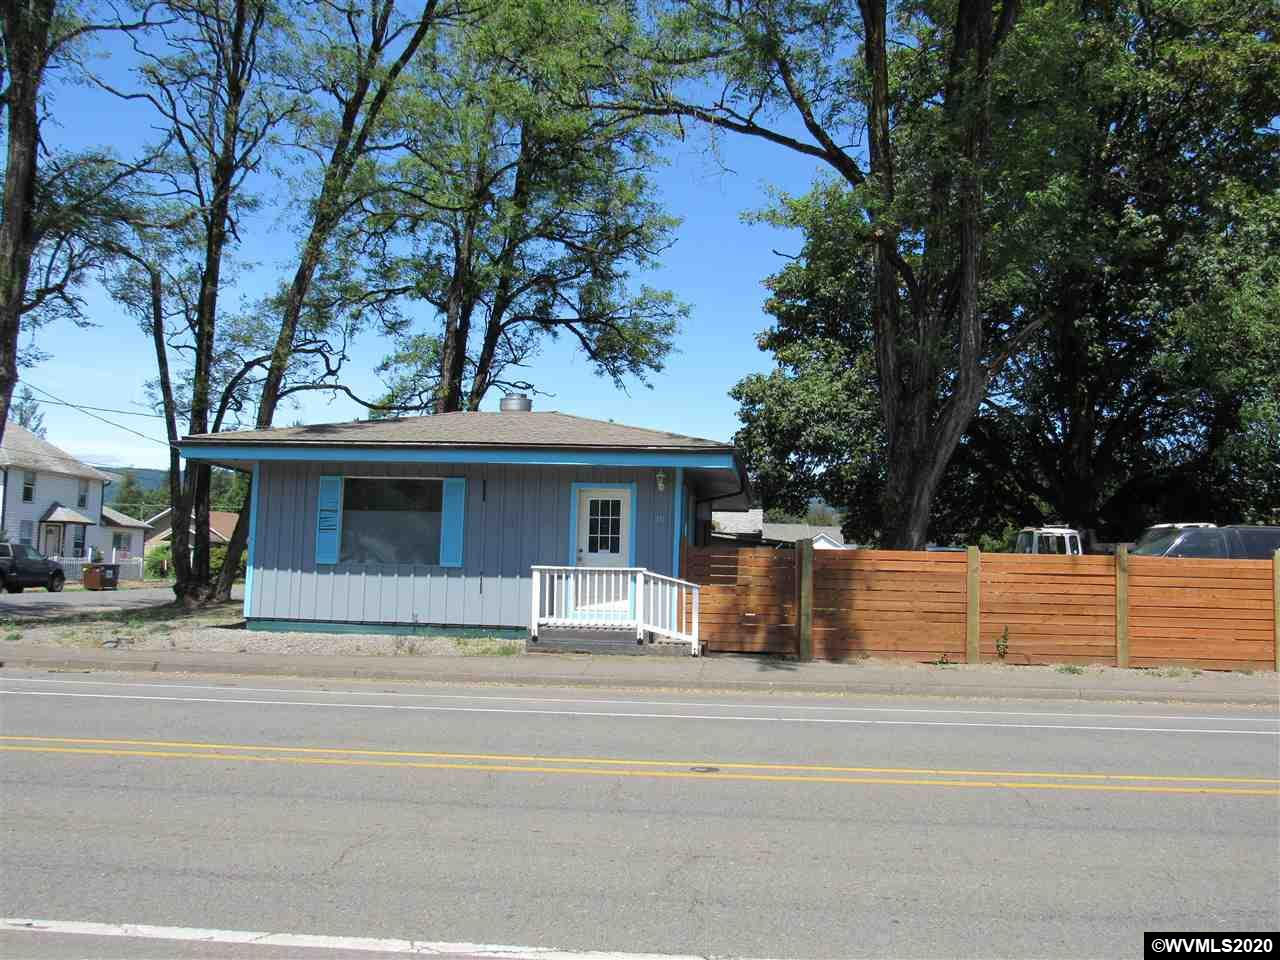 711 Main St, Lyons, Oregon 97358, ,Business Opportunity,For sale,711 Main St,766763